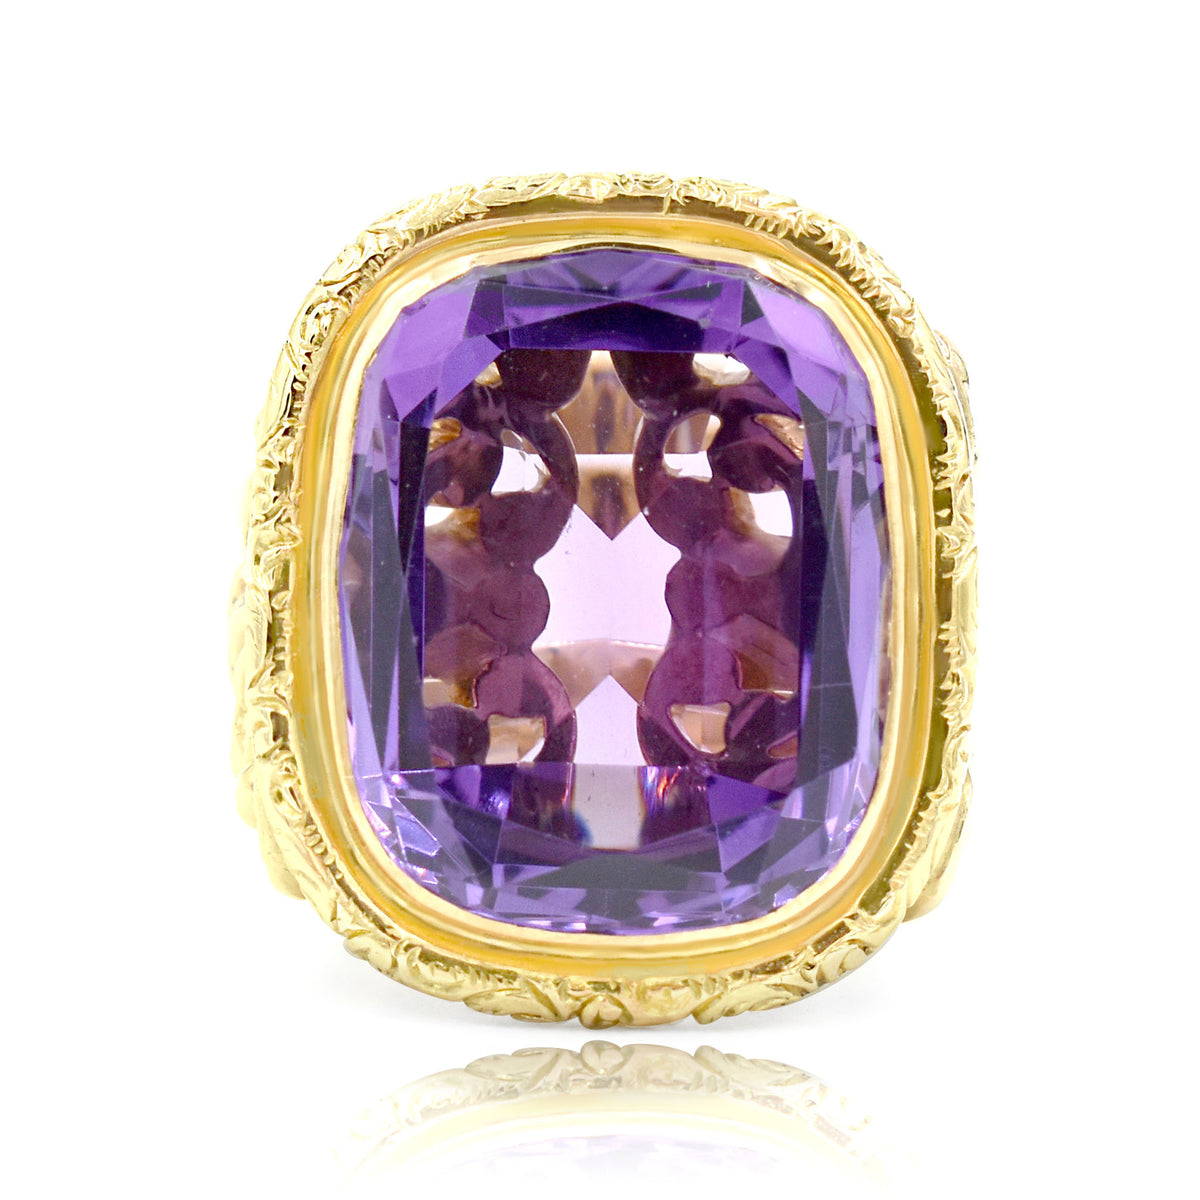 14K Yellow Gold Ornate Design Amethyst Ring